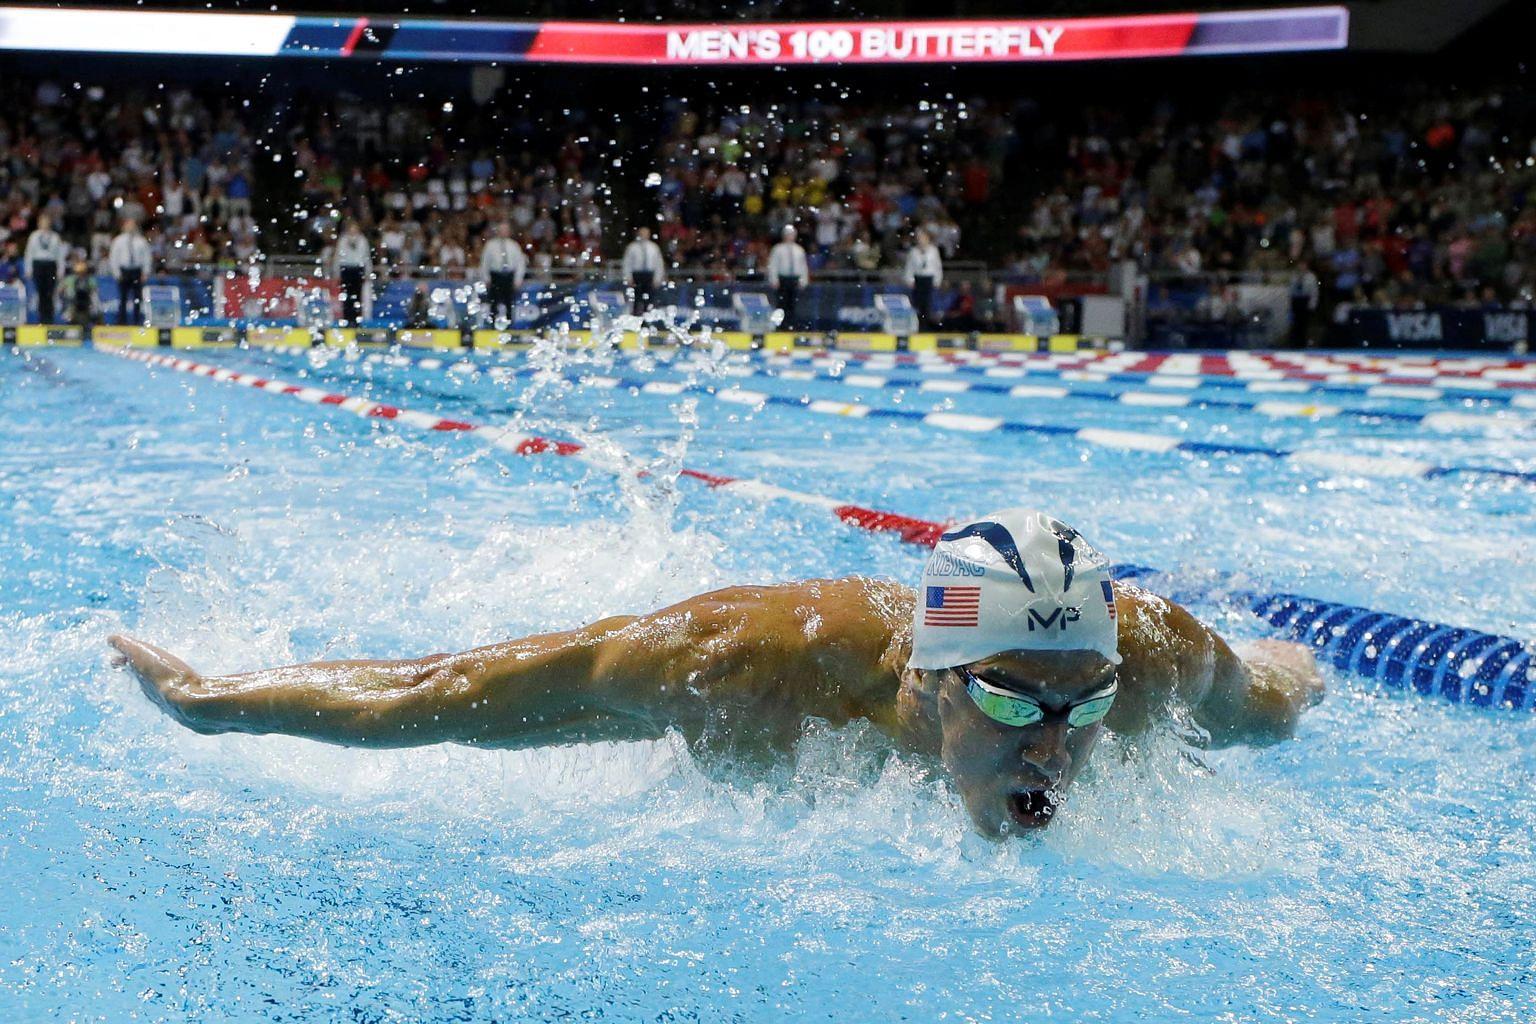 Michael Phelps winning the 100m butterfly final in 51.00sec at the US Olympic trials at the CenturyLink Centre in Omaha, Nebraska on Saturday.